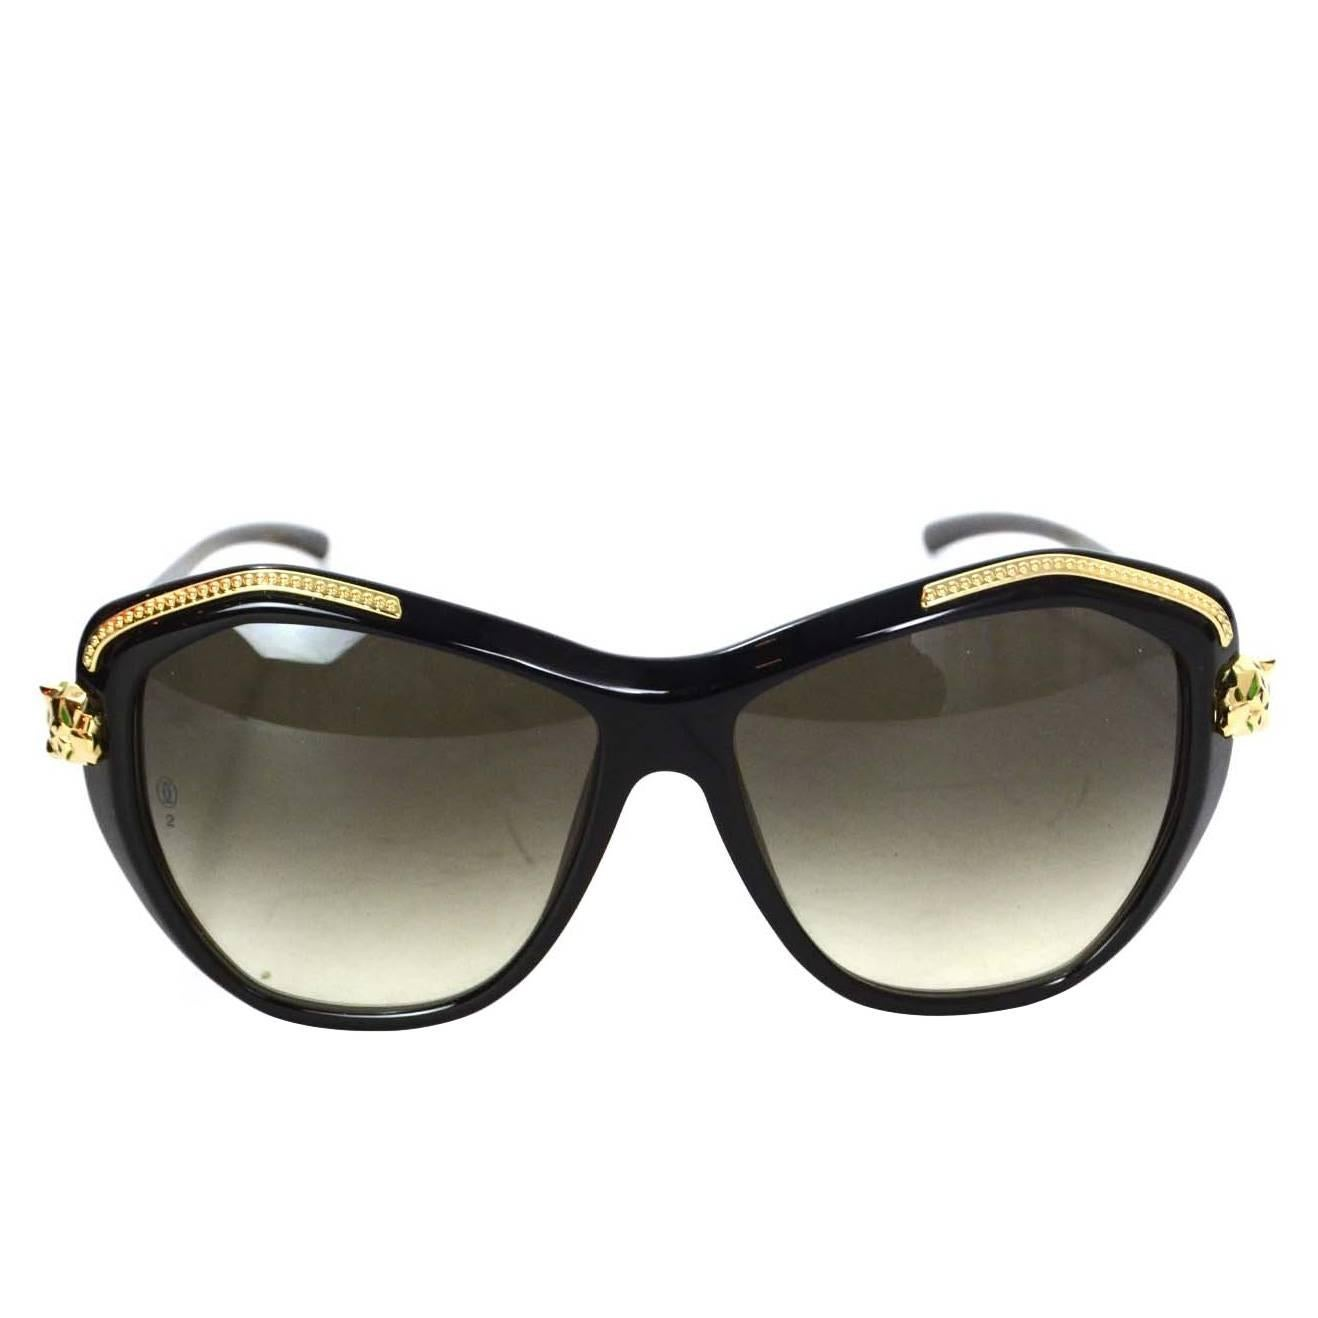 70b0bb10e6 Cartier Black Resin  Panthere Wild de Cartier  Sunglasses For Sale at  1stdibs